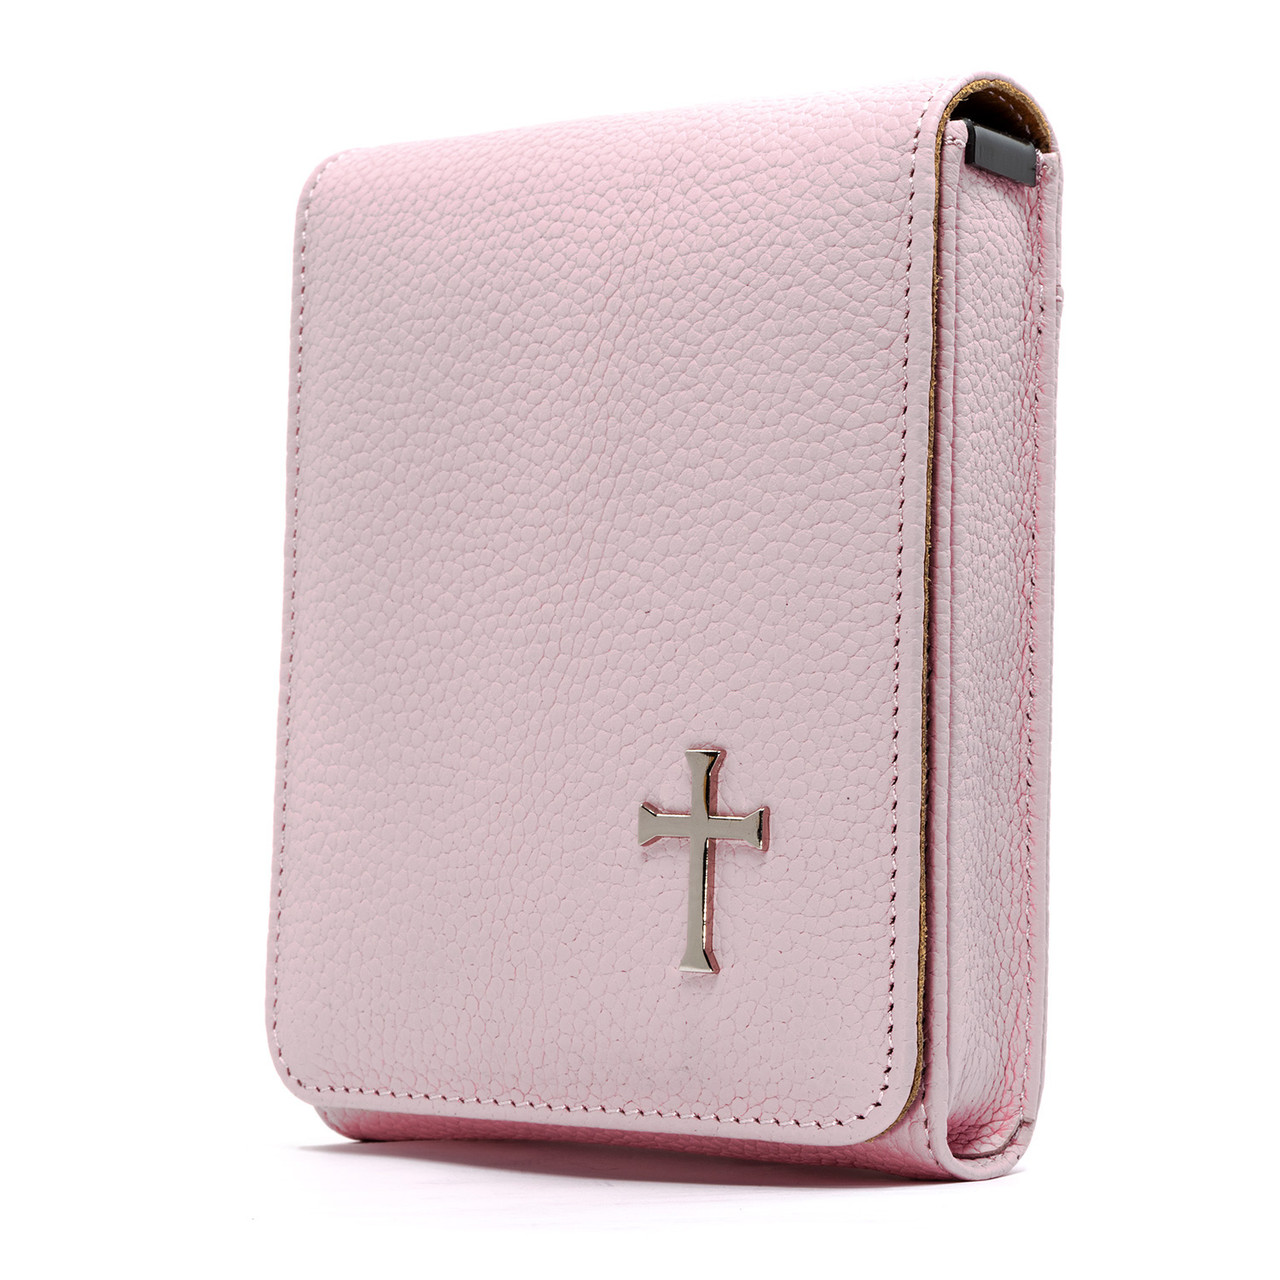 Ruger Security 9 Pink Carry Faithfully Cross Holster